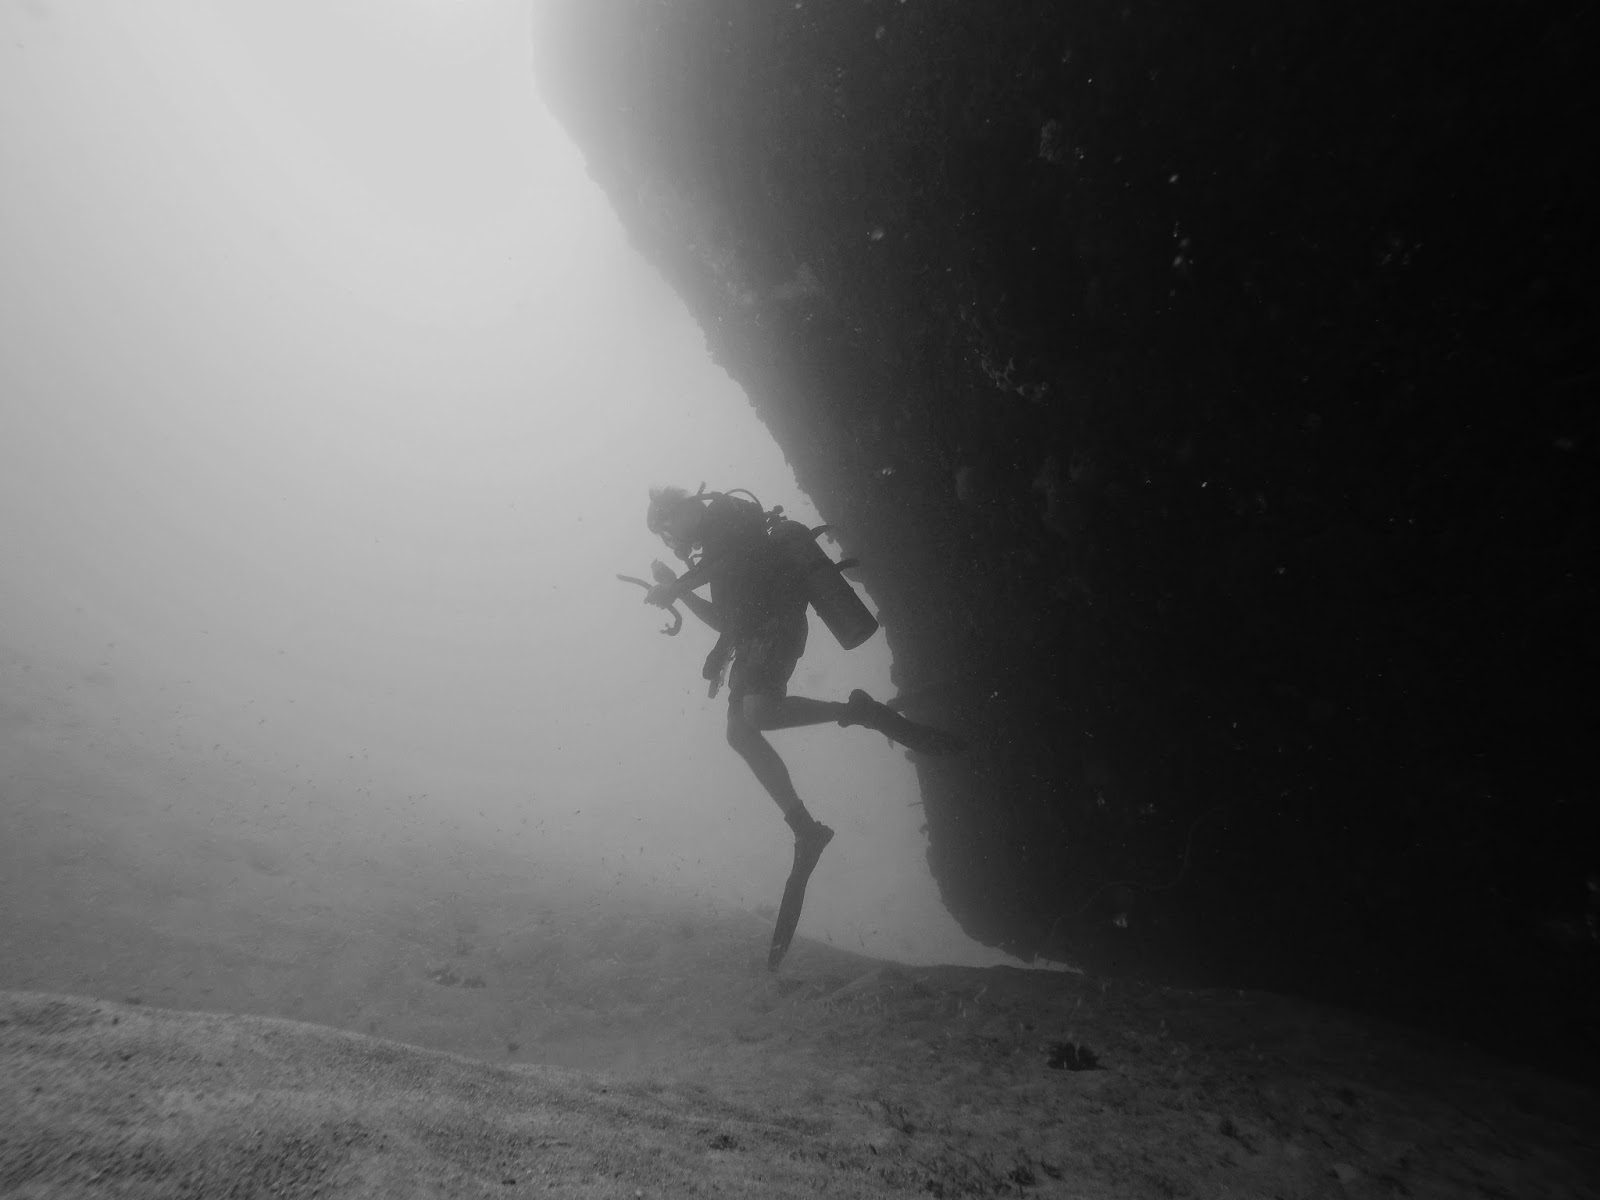 Diving, Underwater Photography, Barbados, Black and White Photography, GoPro